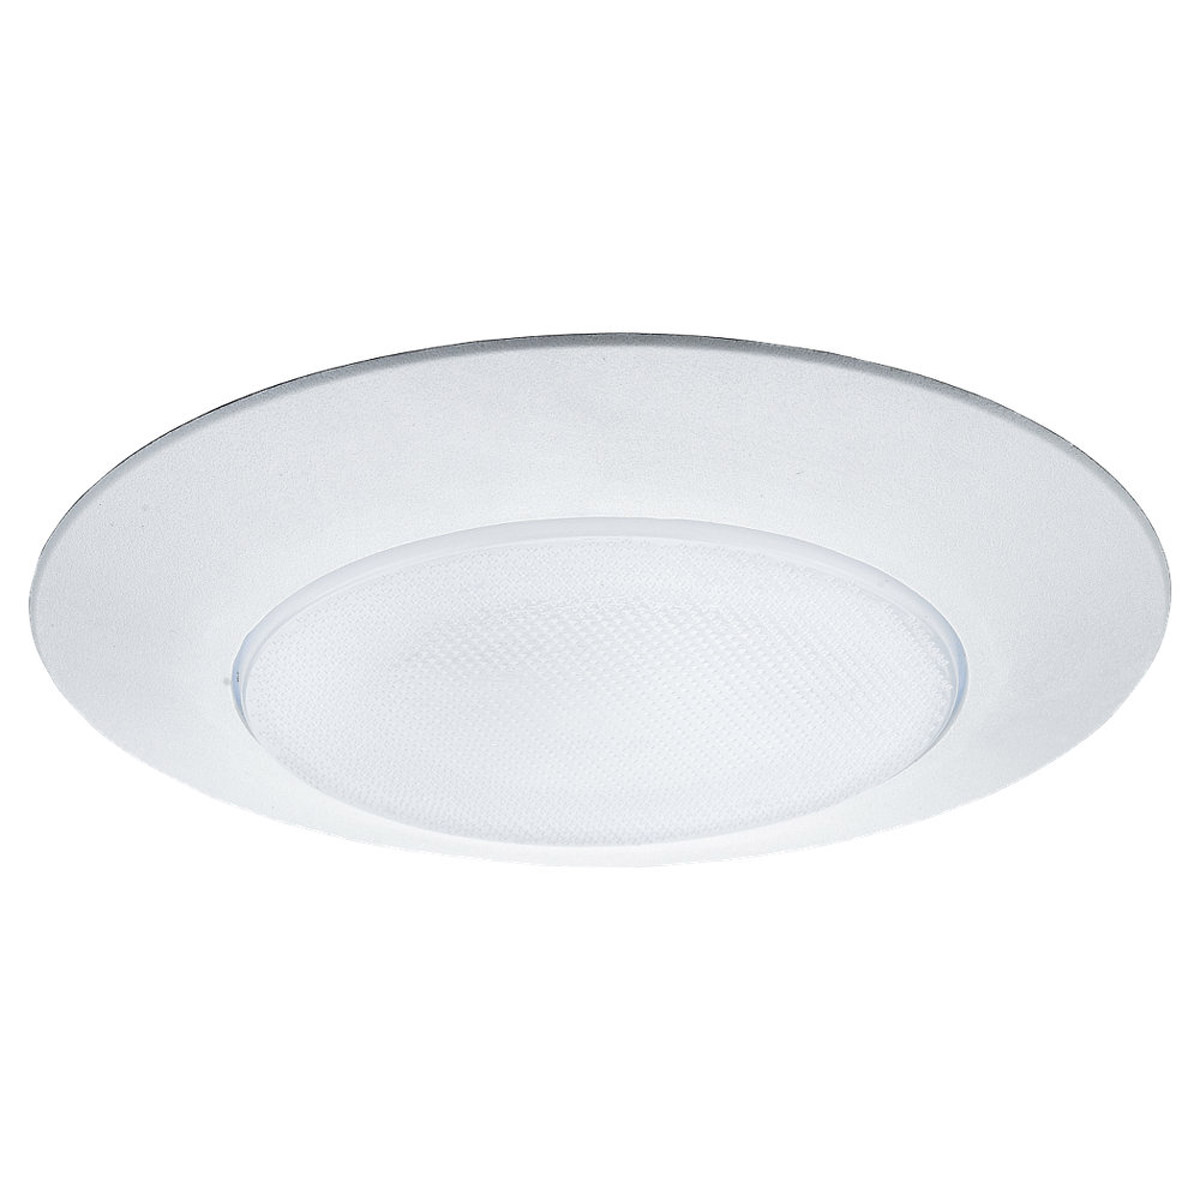 Sea Gull Lighting Signature Recessed Trim Only in White 1133AT-15